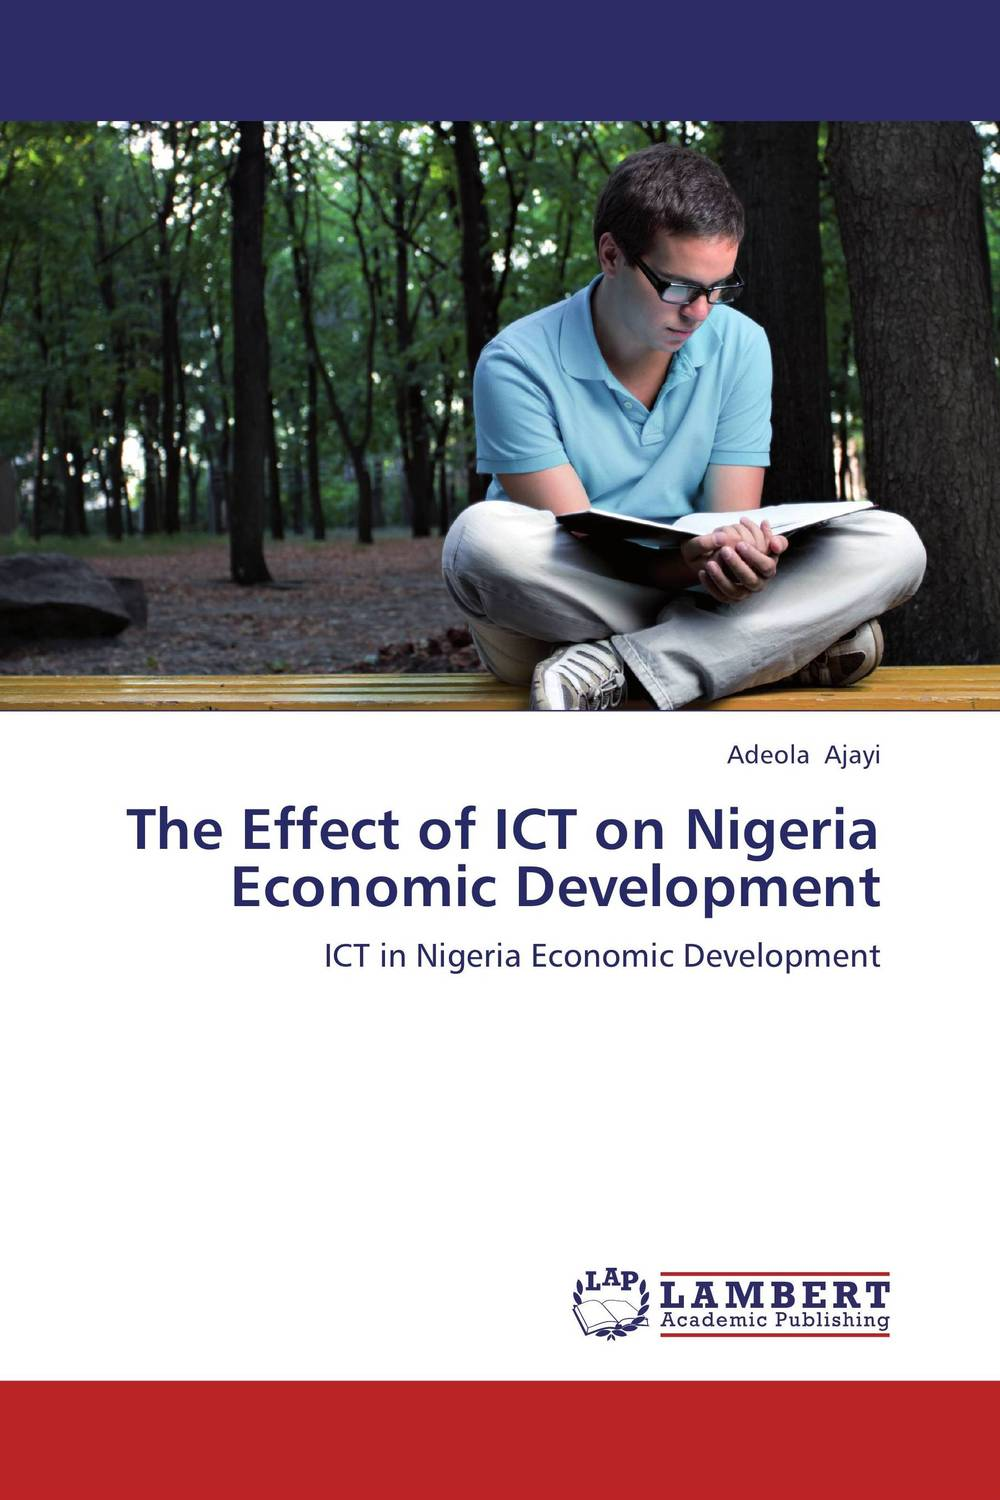 The Effect of ICT on Nigeria Economic Development helina befekadu the nature and effect of emotional violence